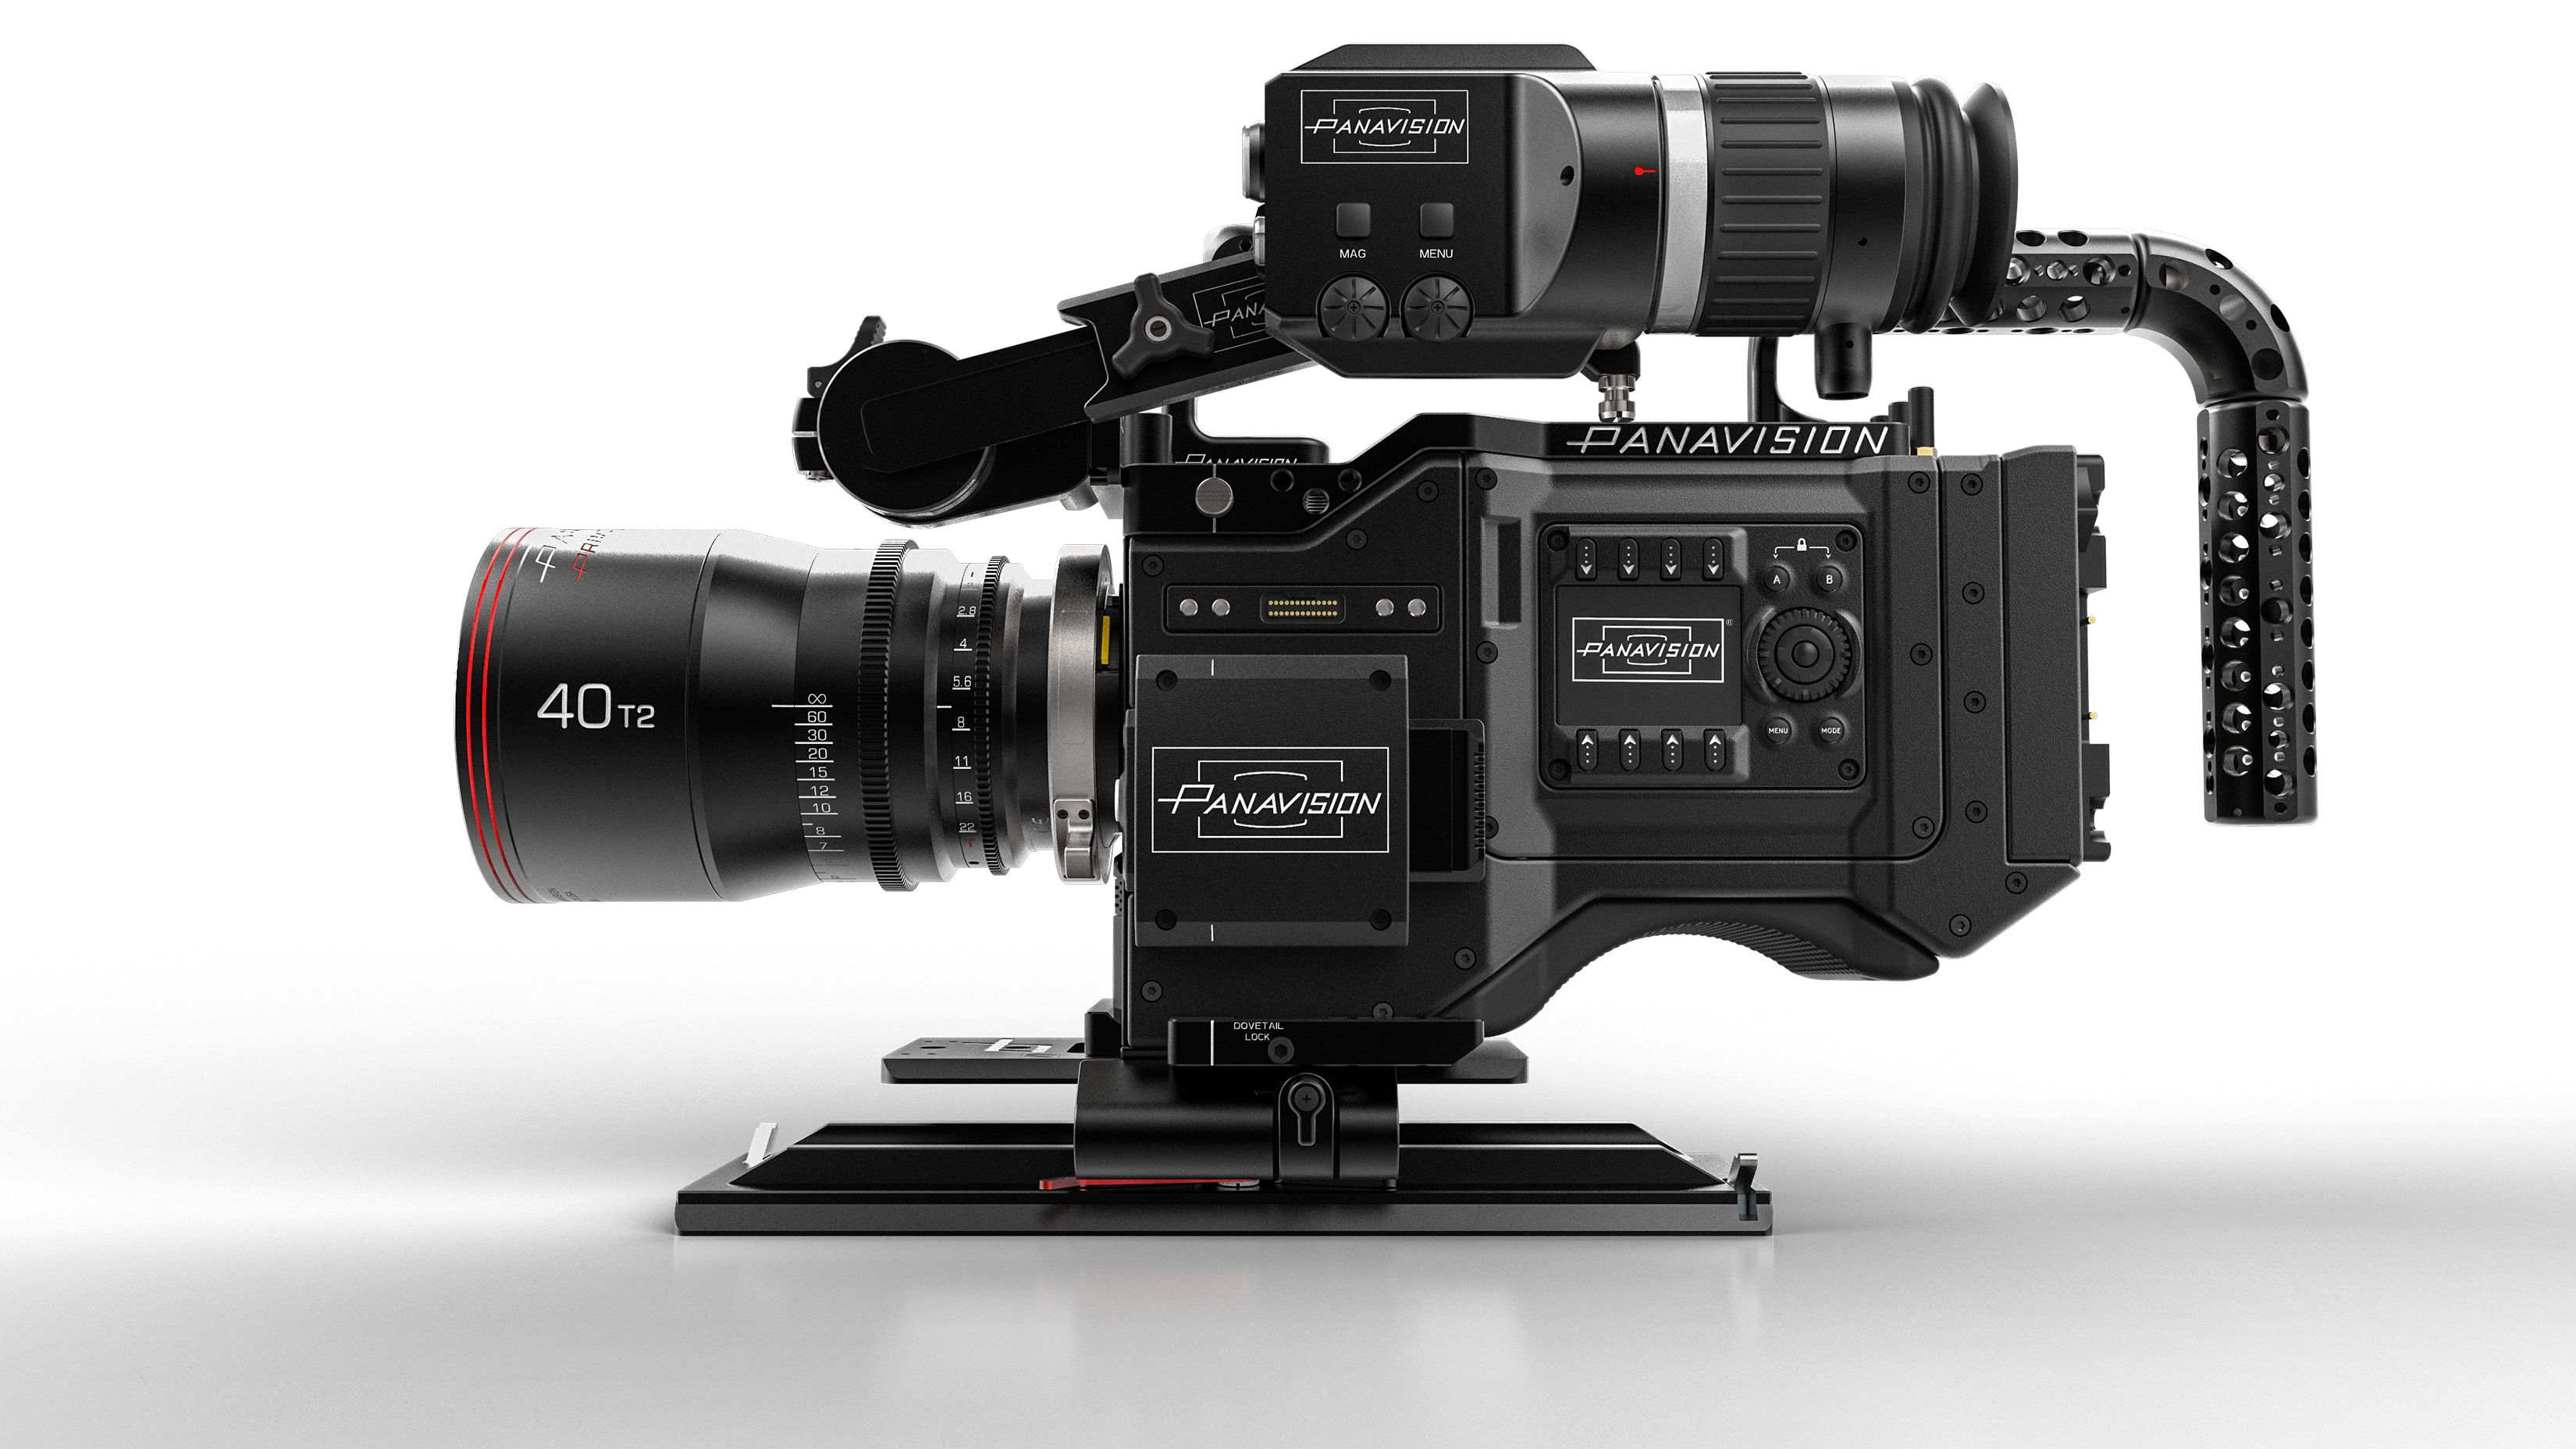 The Panavision Millennium DXL: Light Iron and RED create a winning new look for large format cinematography 9